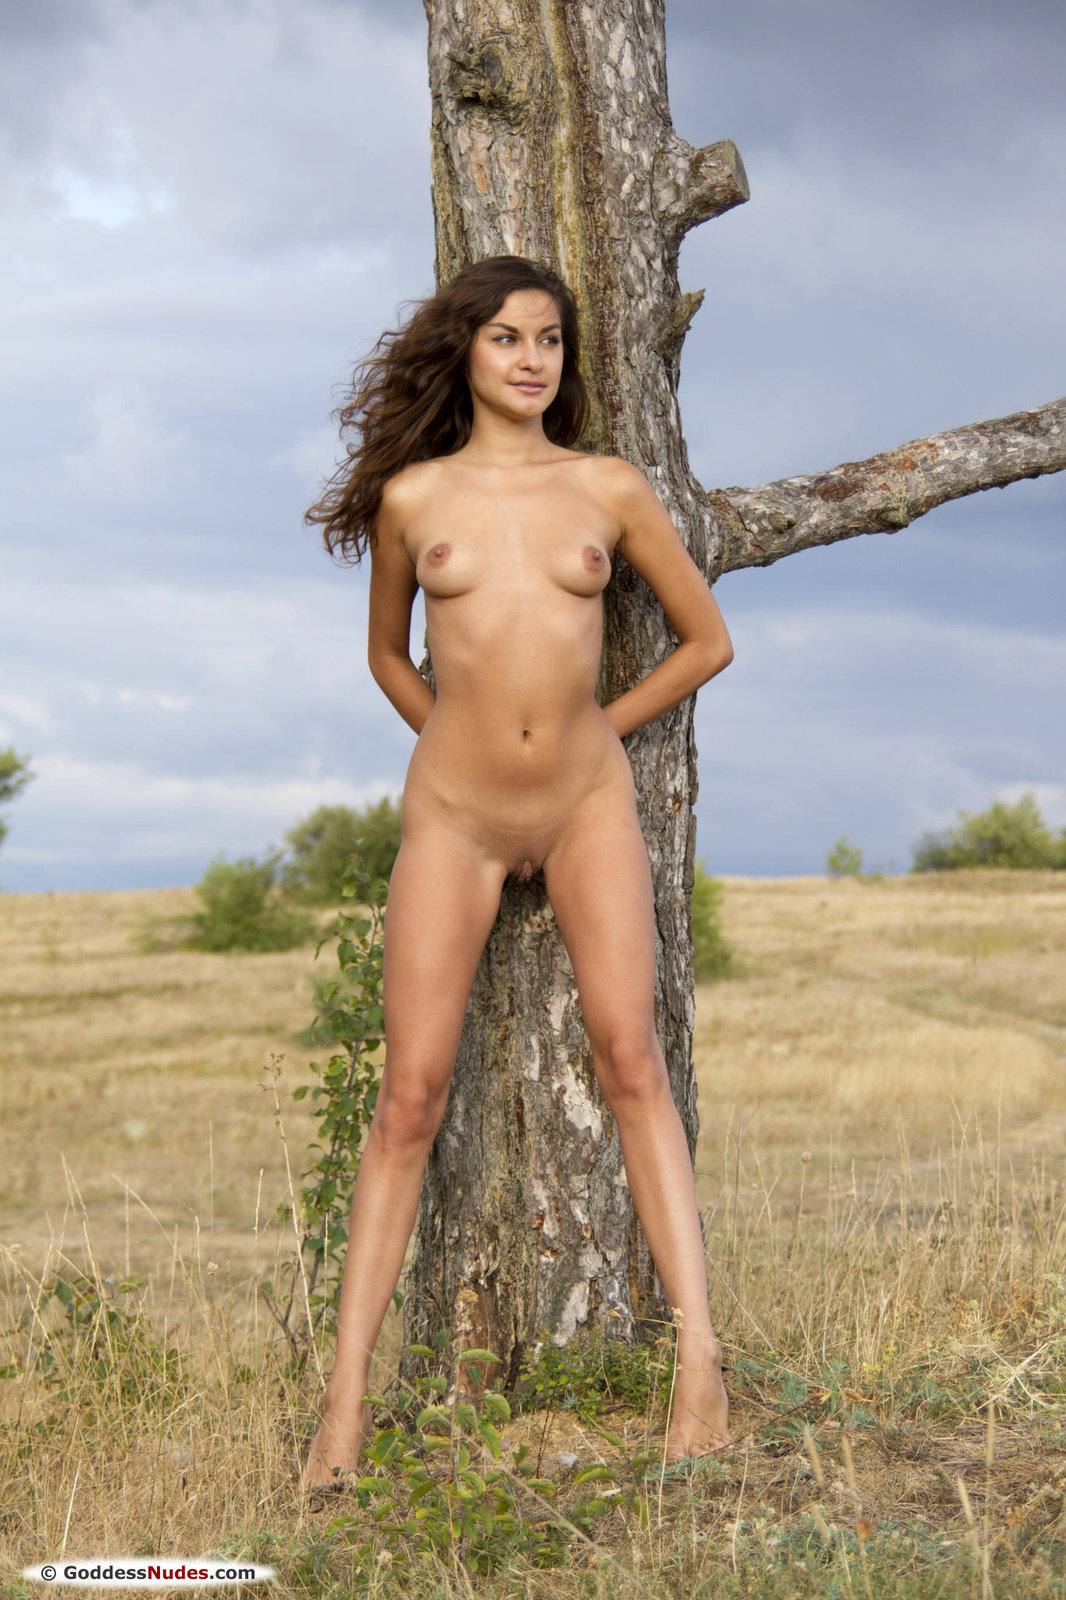 Annya In Naked Outdoors By Goddess Nudes 16 Photos  Erotic Beauties-8166